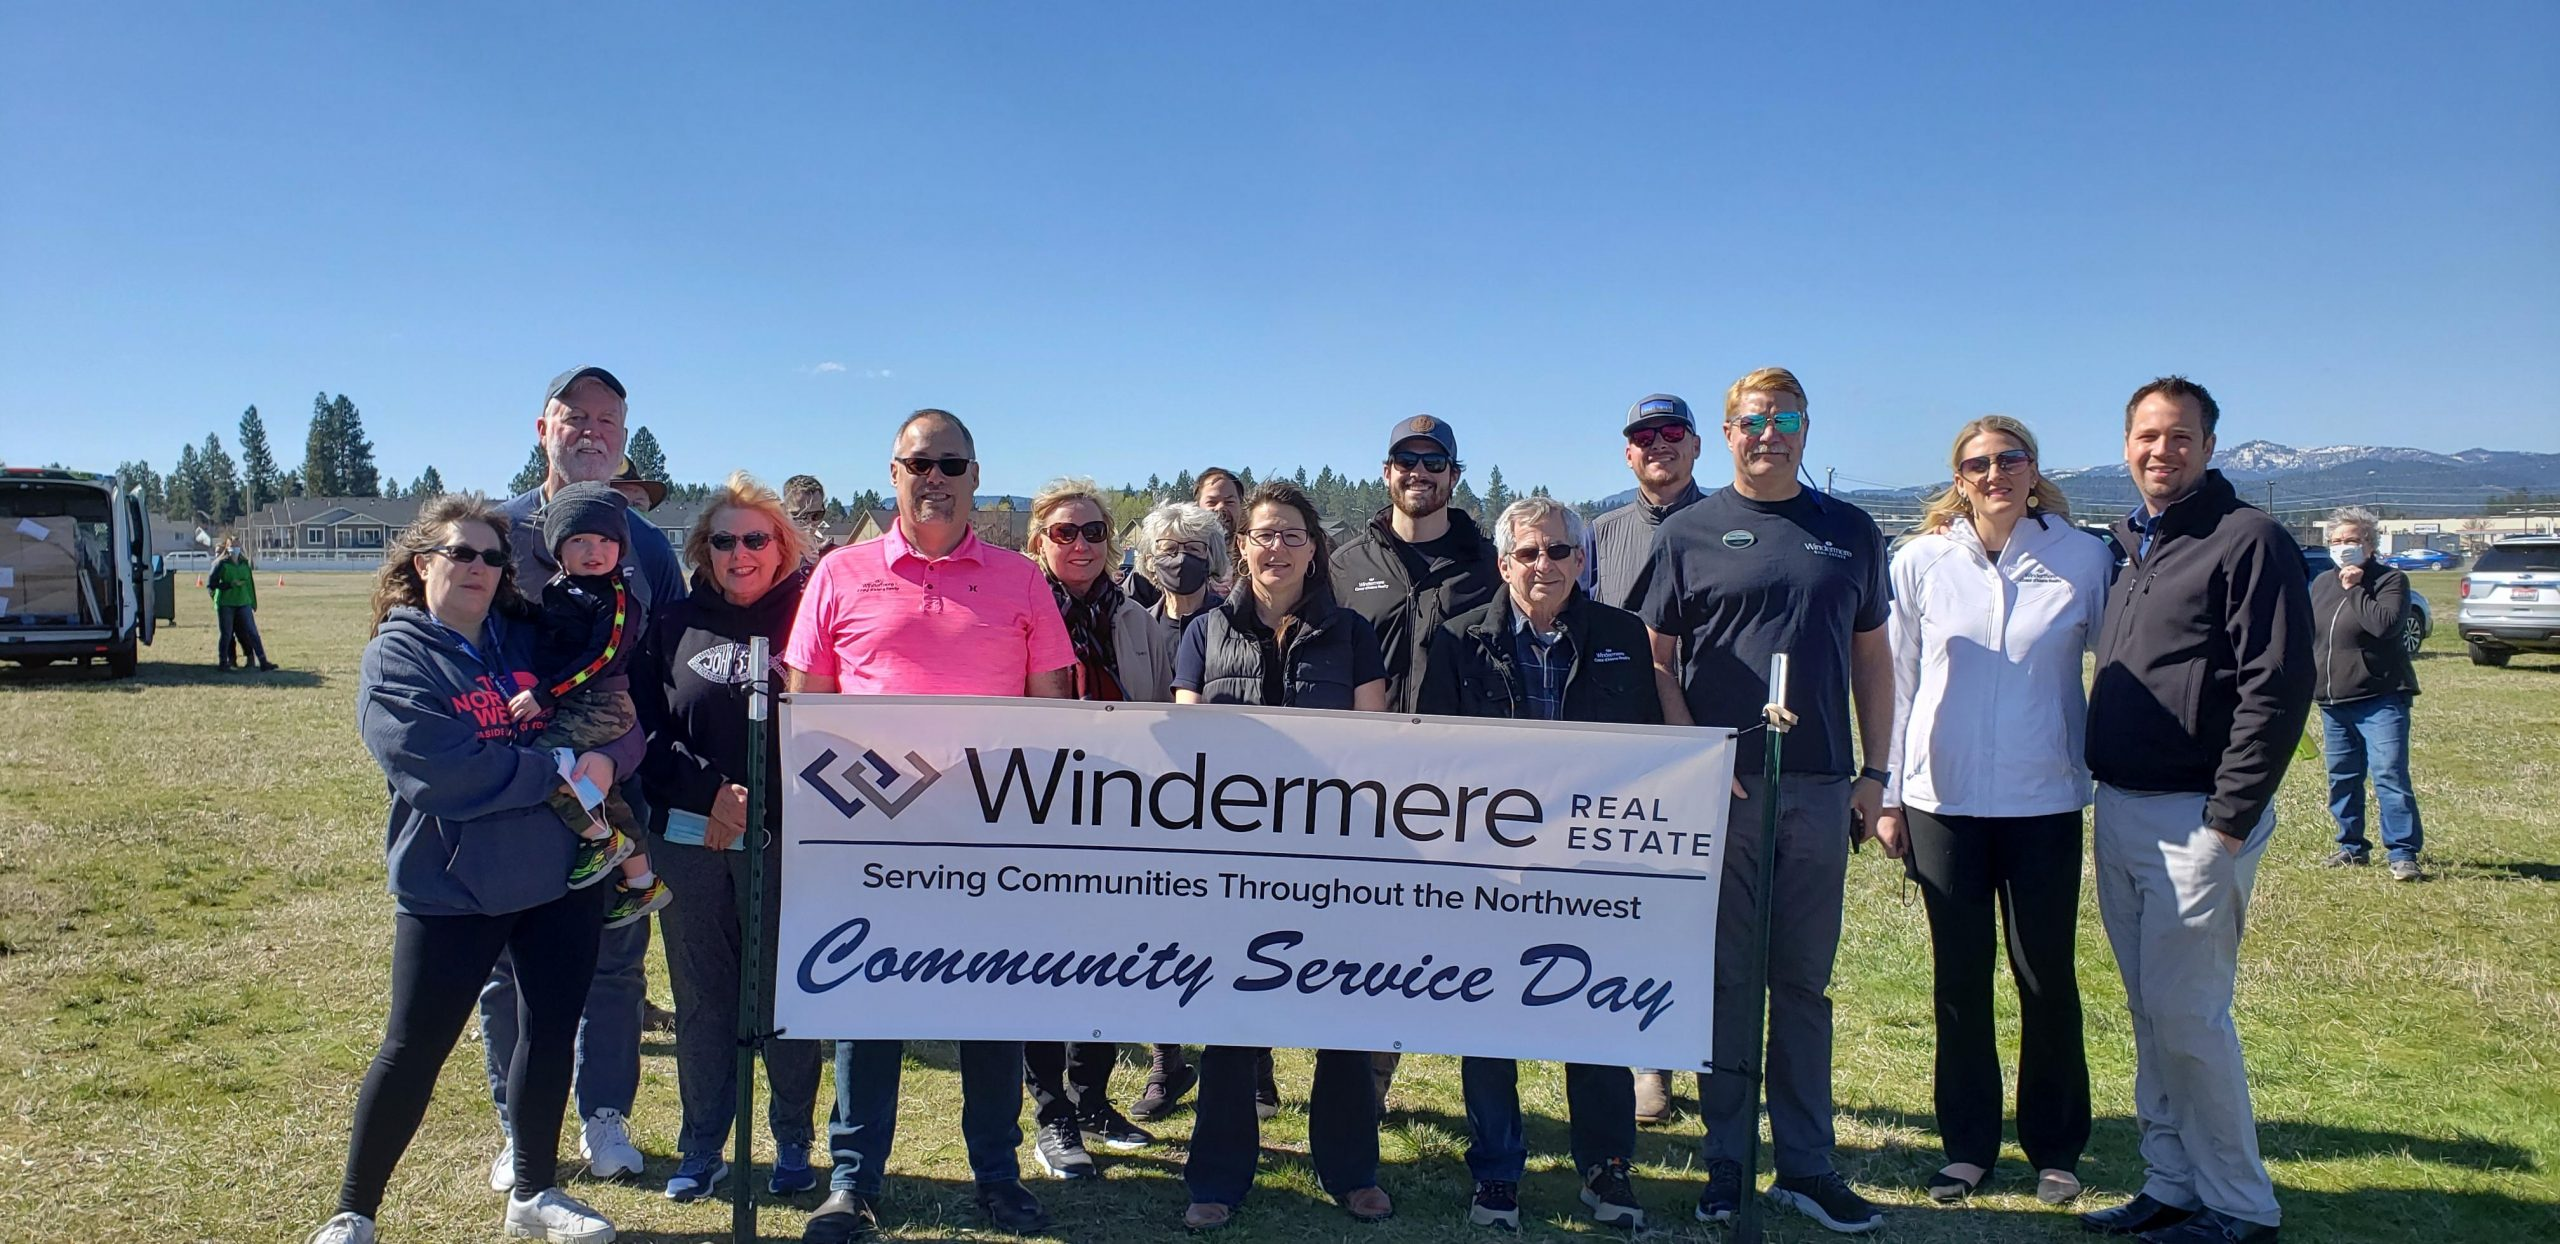 A group of people hold a Windermere Community Service Day banner.